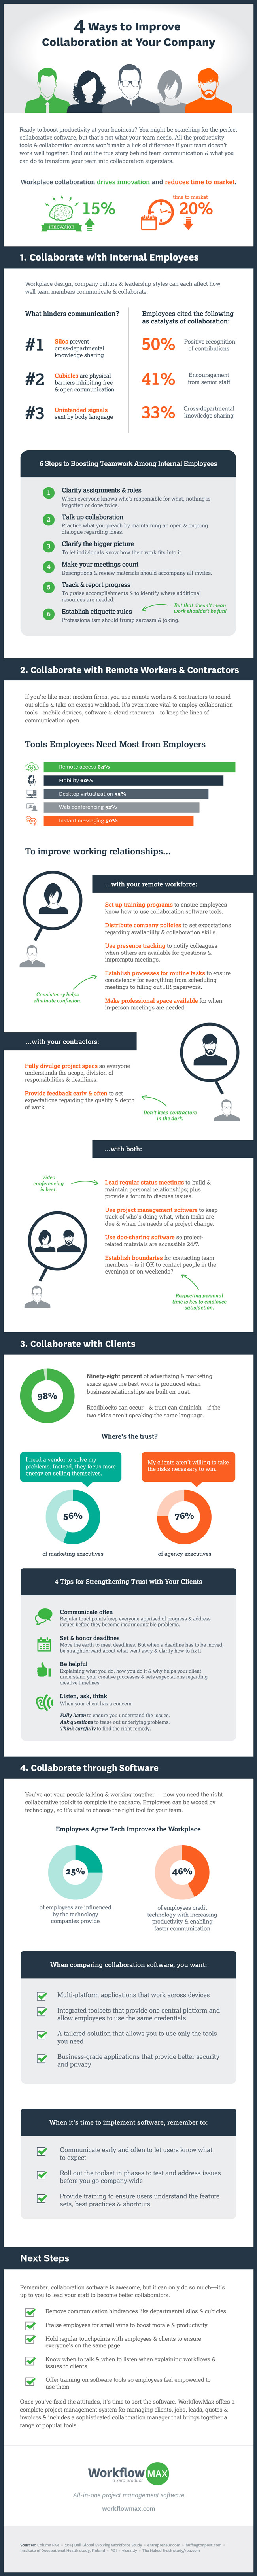 4 Ways To Improve Collaboration at Your Company